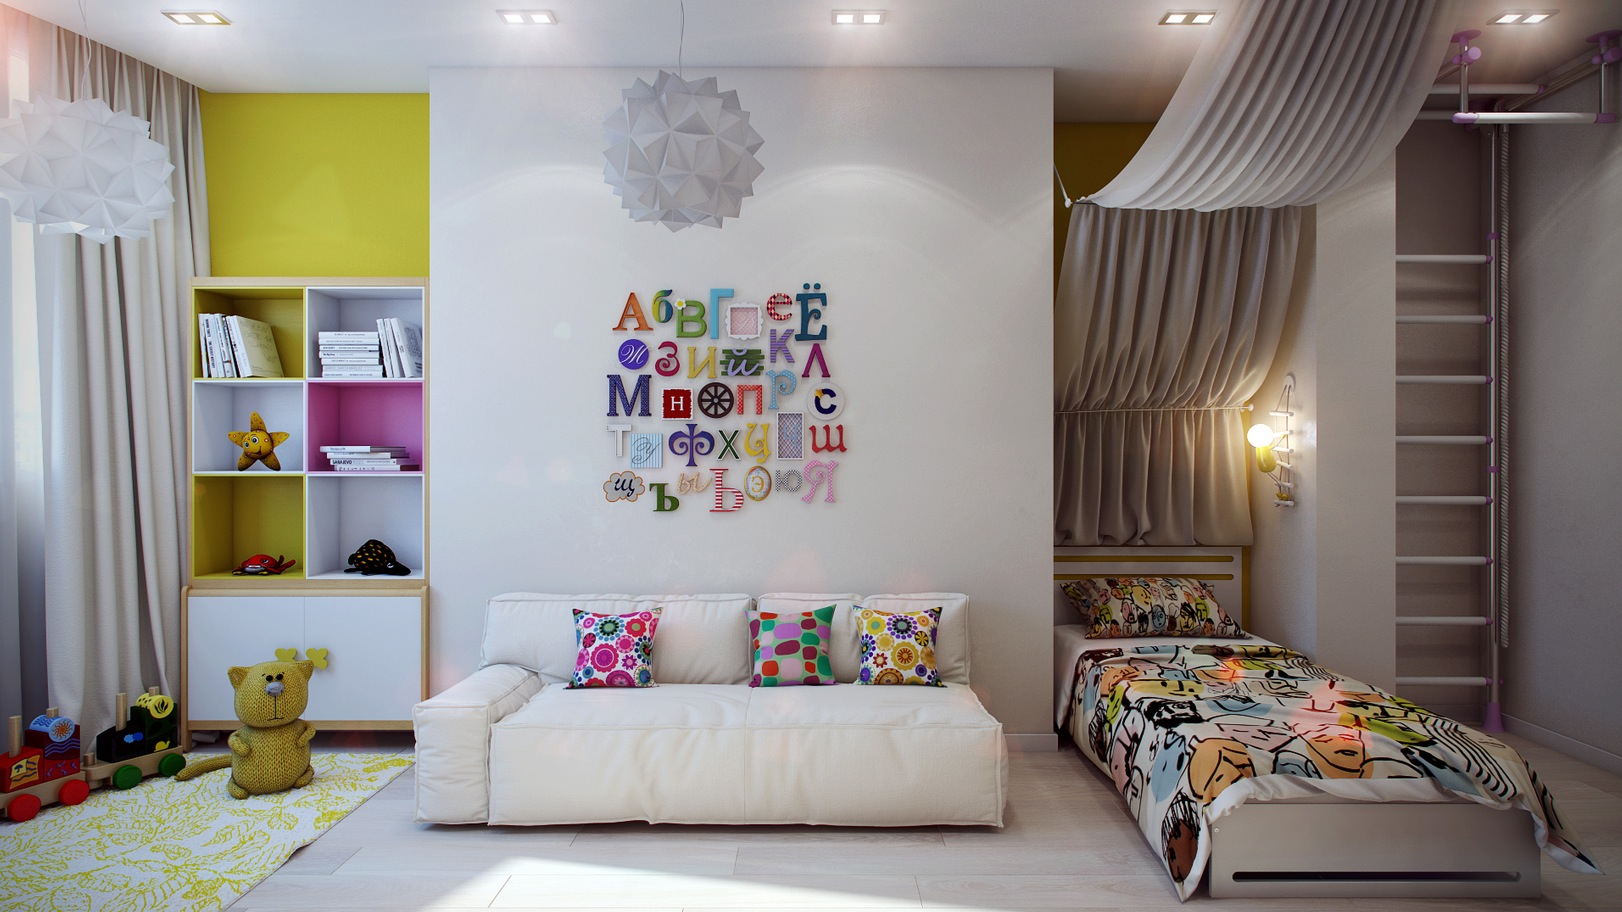 Casting color over kids rooms - Decoration murale chambre enfant ...